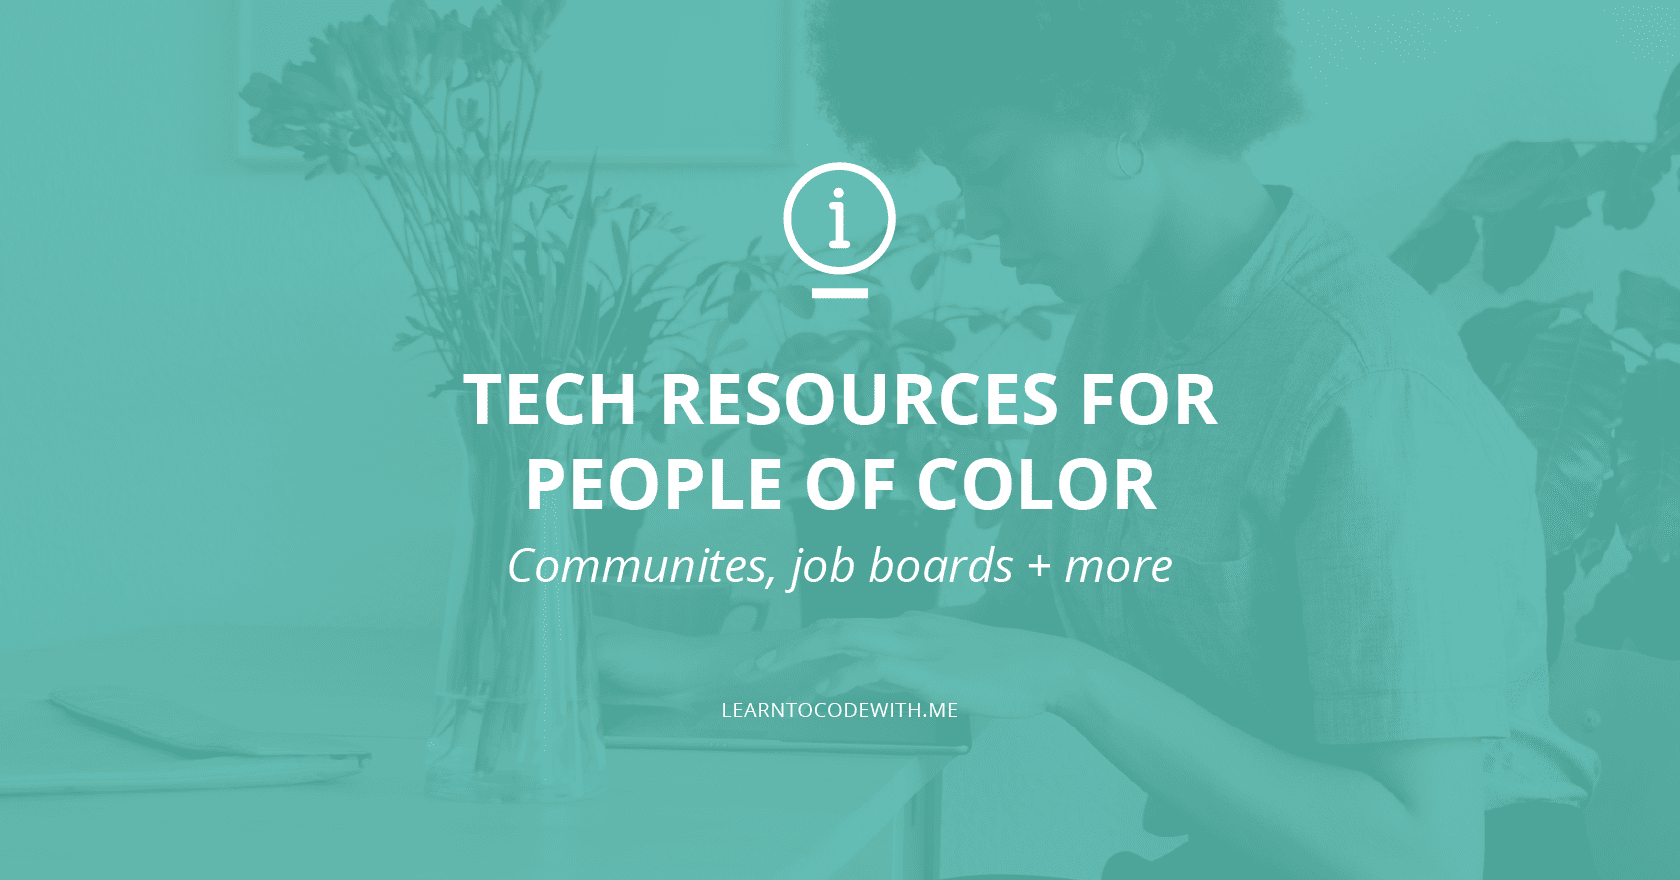 Tech resources for People of Color